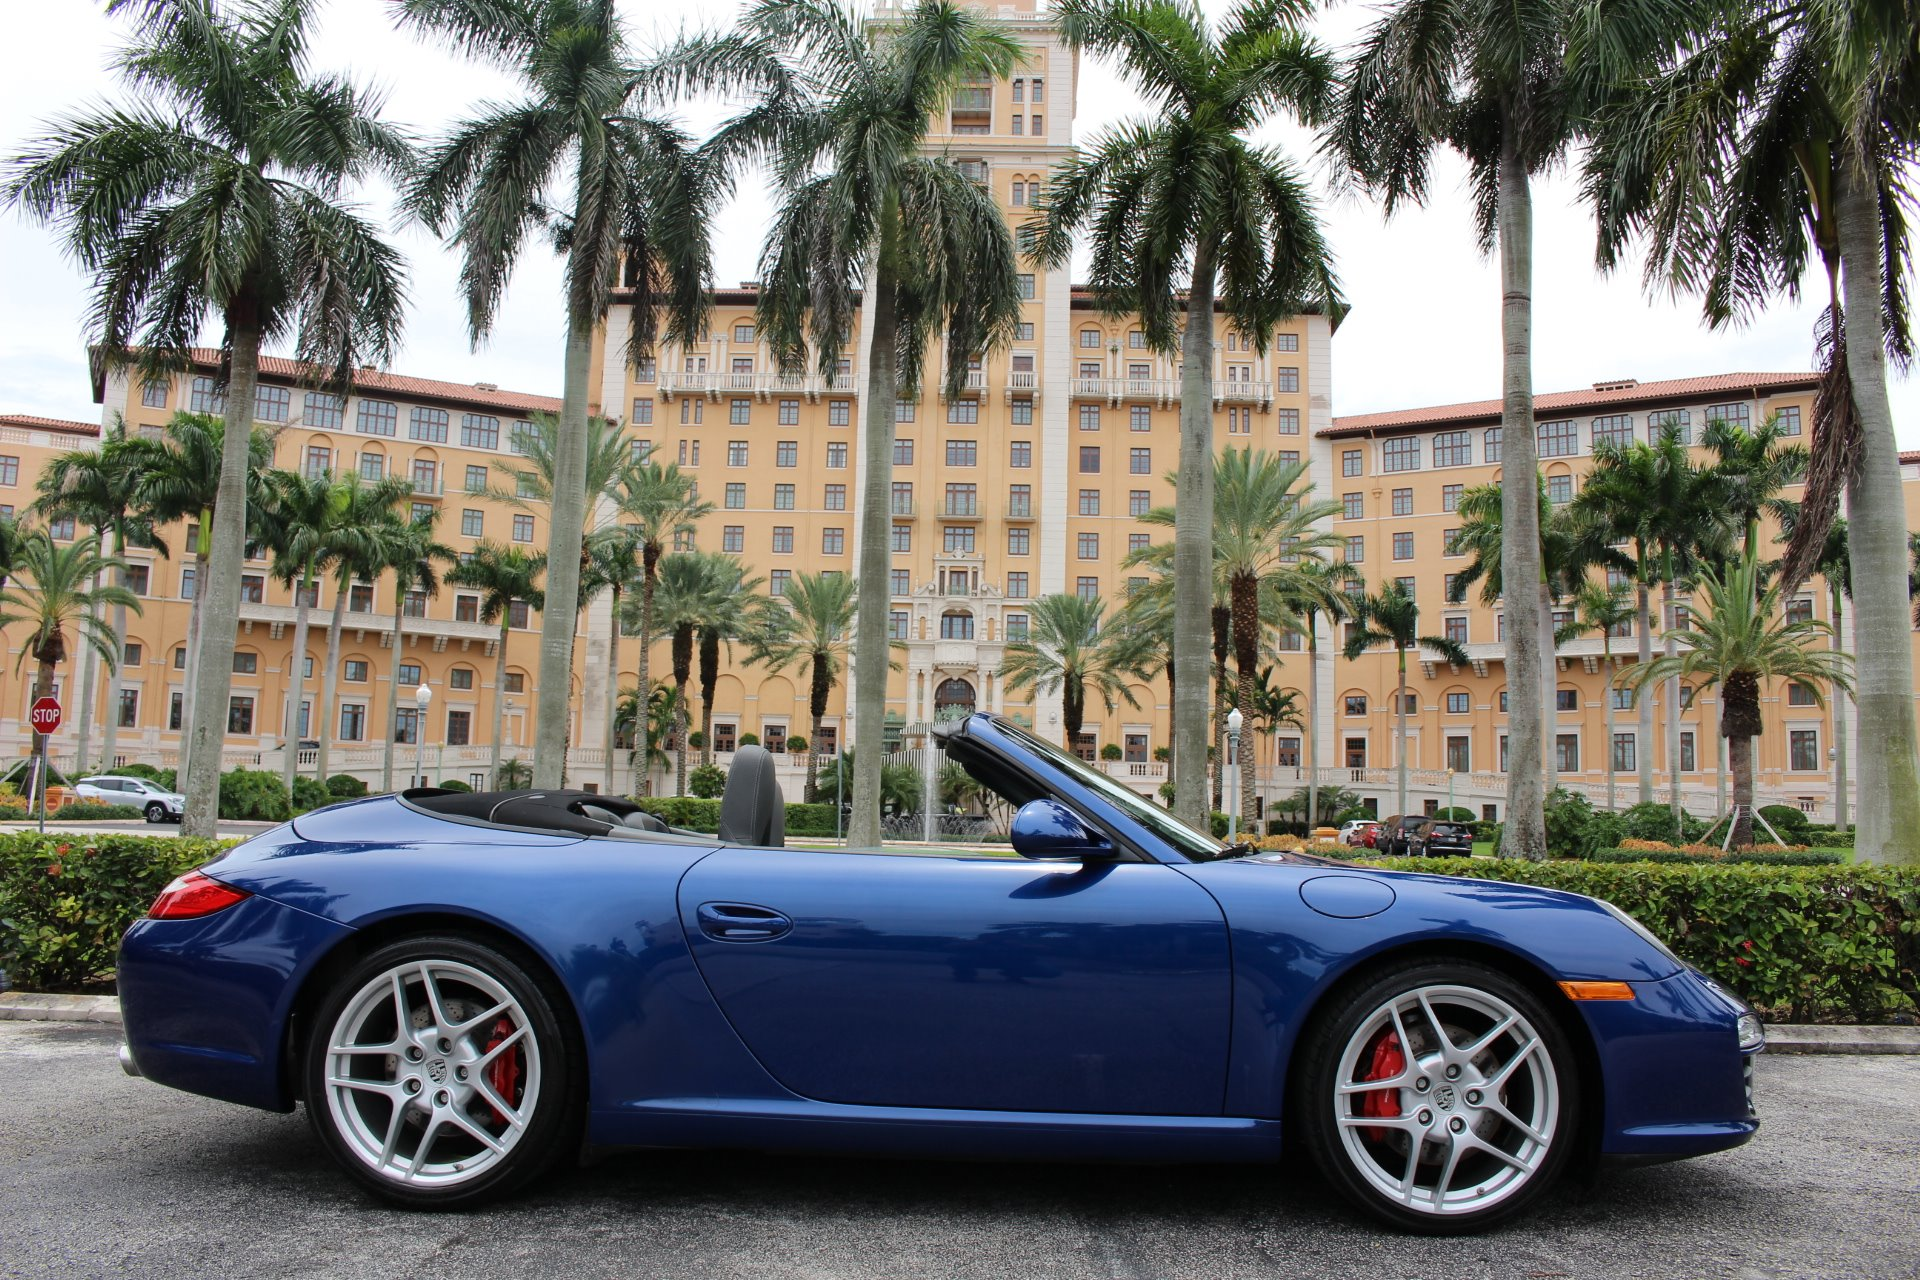 Used 2009 Porsche 911 Carrera S for sale $47,850 at The Gables Sports Cars in Miami FL 33146 1